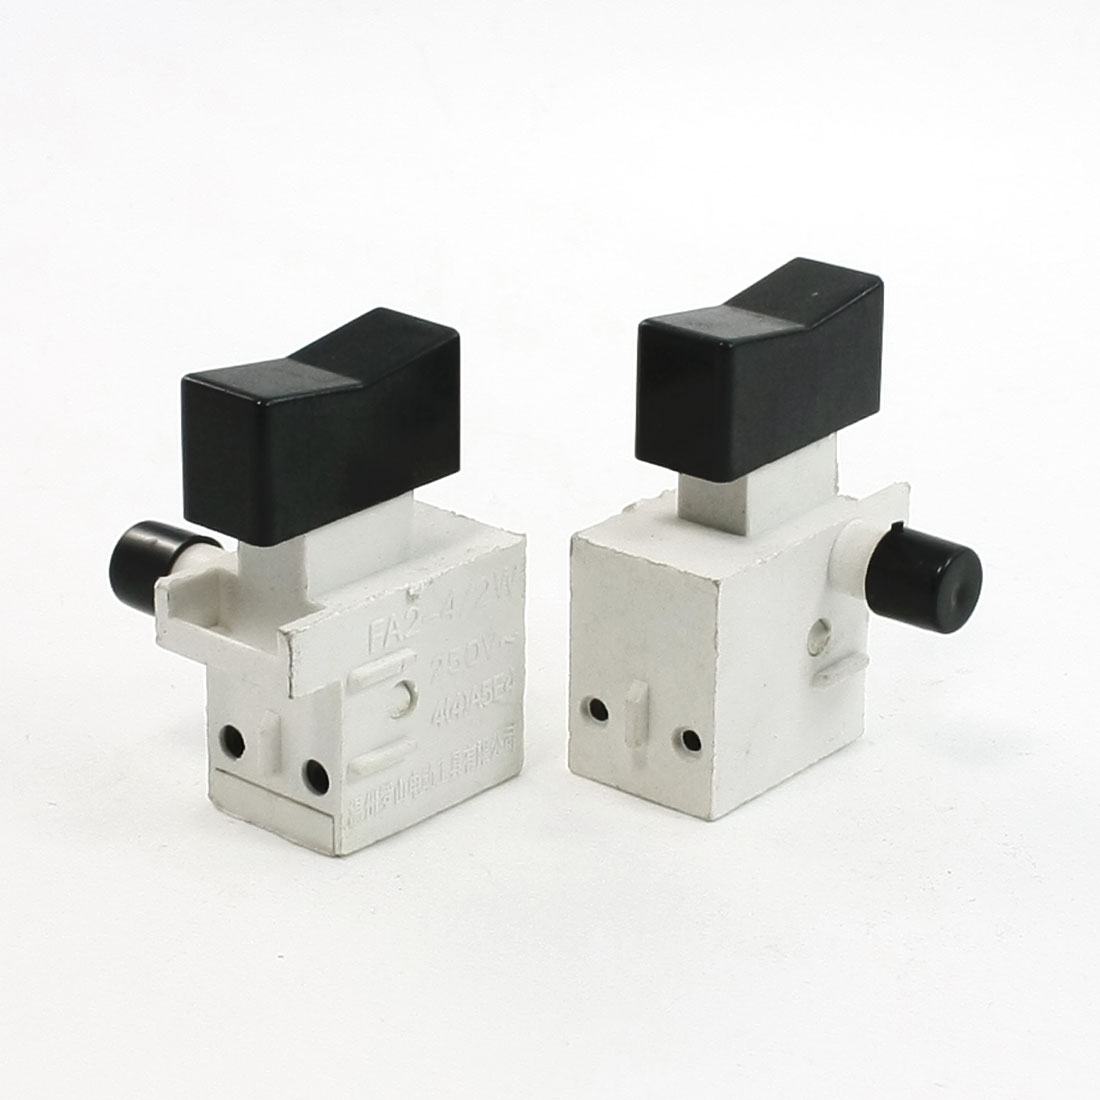 2 Pcs 1NO 1NC Double Pole Single Throw Self Latching Power Tool Switch AC250V 4A